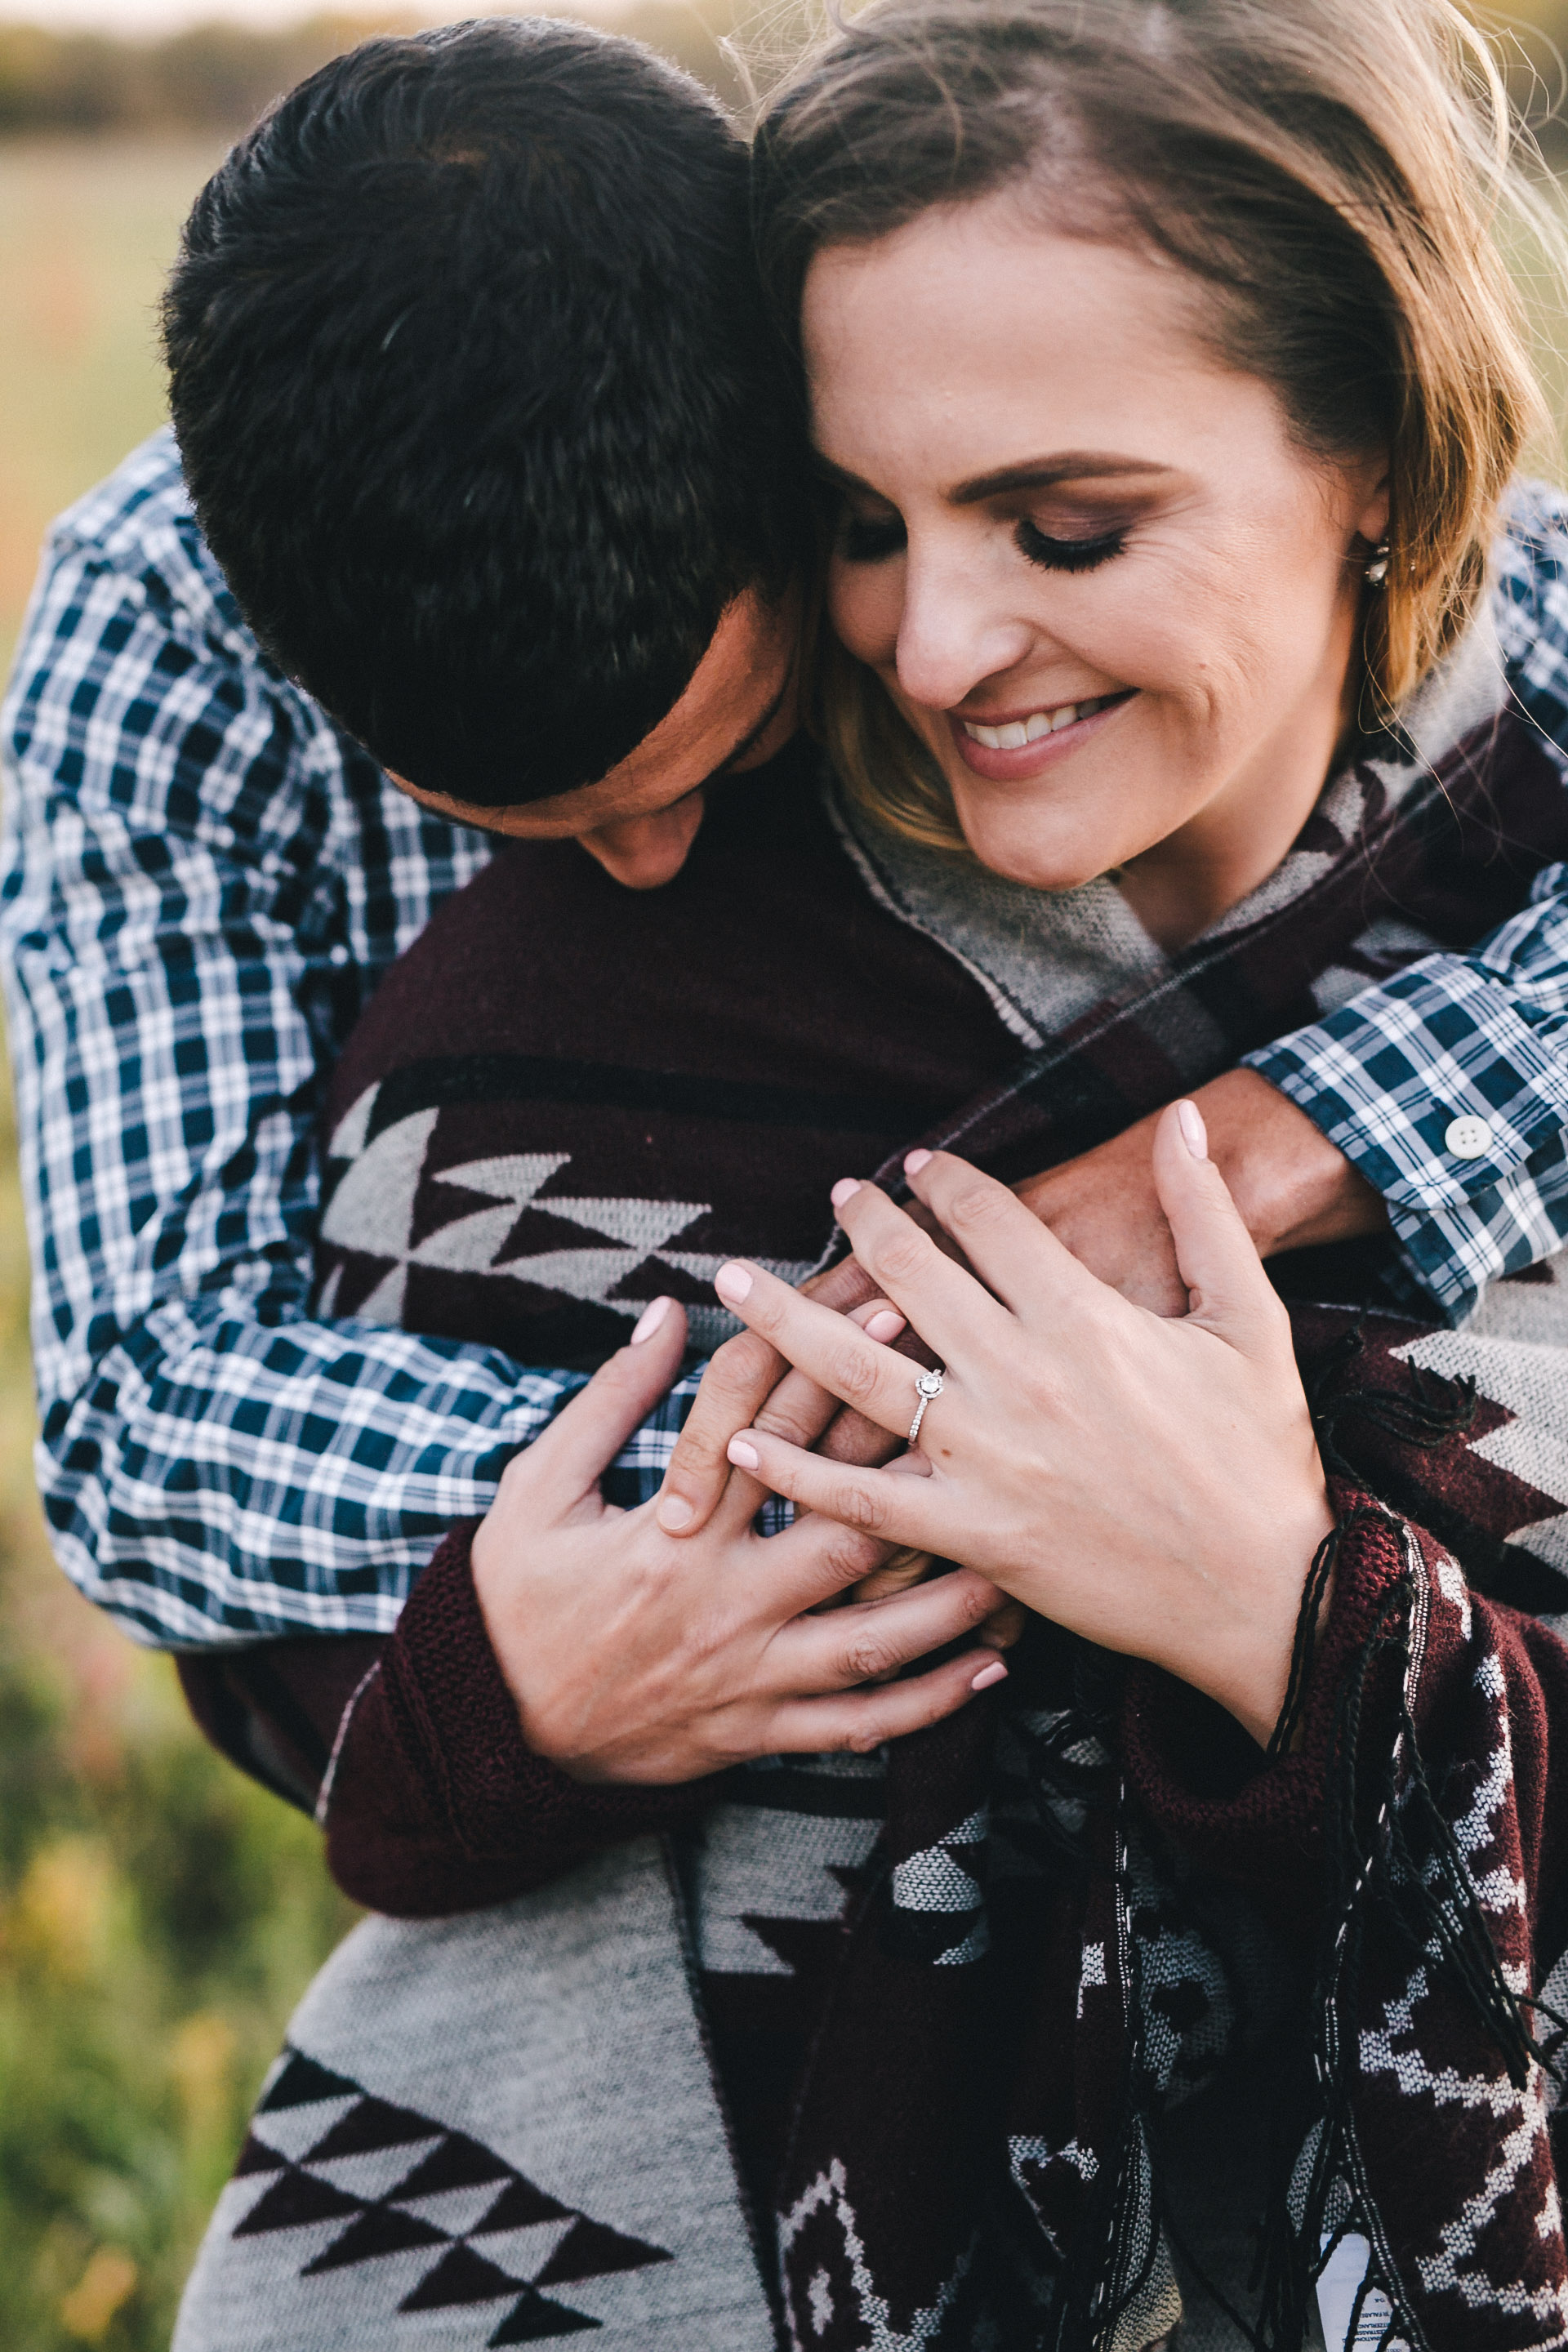 CourtneyDarrenEngagement-29.jpg